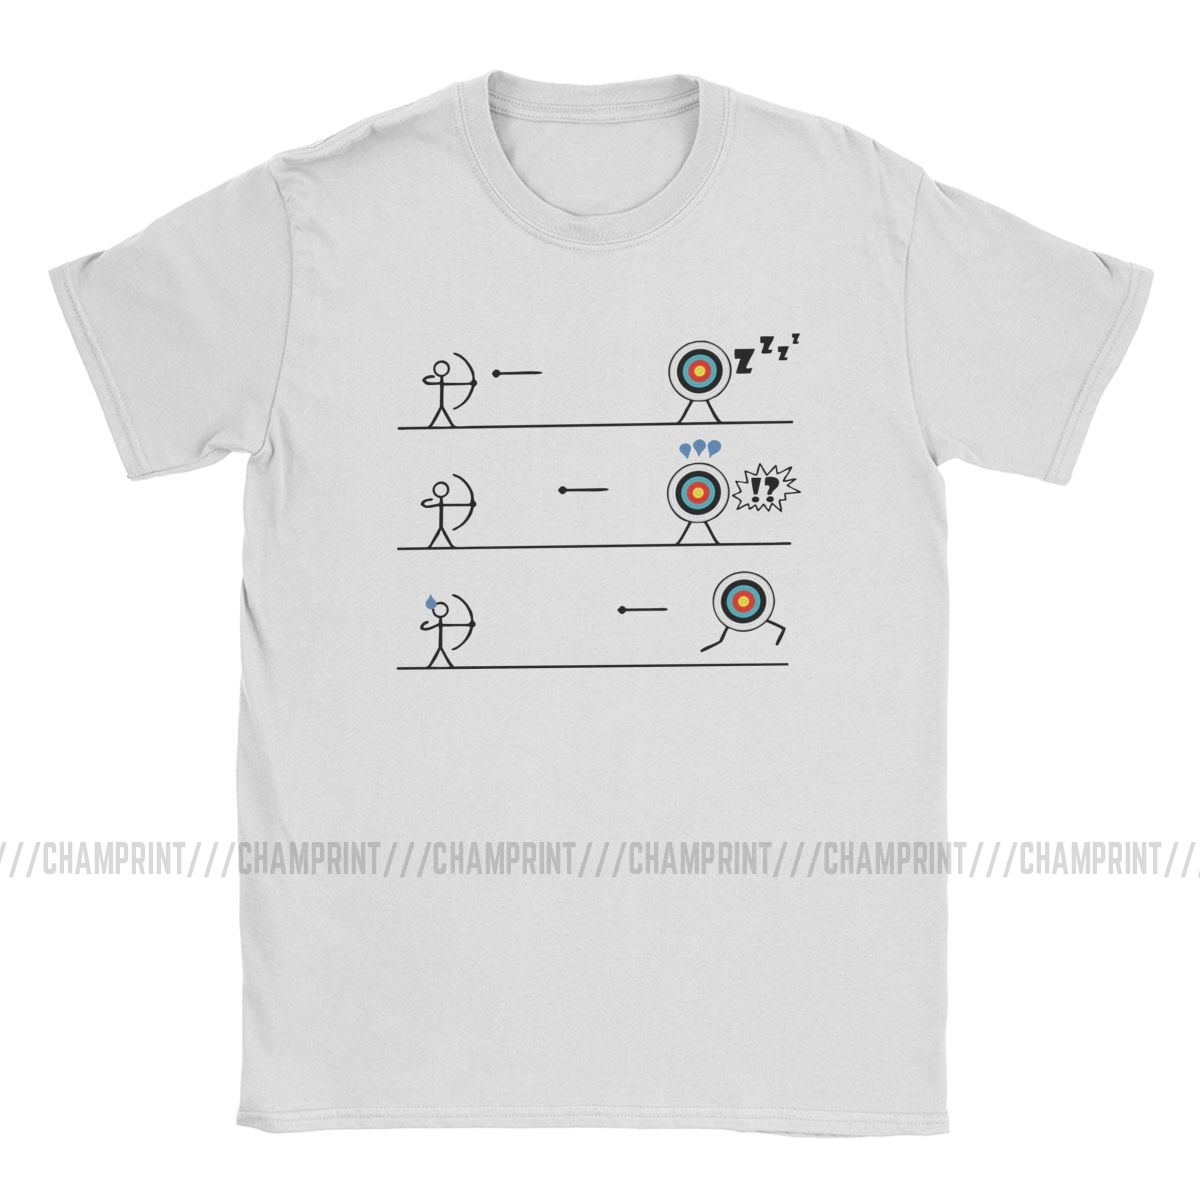 Funny Running Archery Target T-Shirt Men Cotton T Shirt Bow Arrow Japanese Primitive Archer Kyudo Short Sleeve Tees Adult